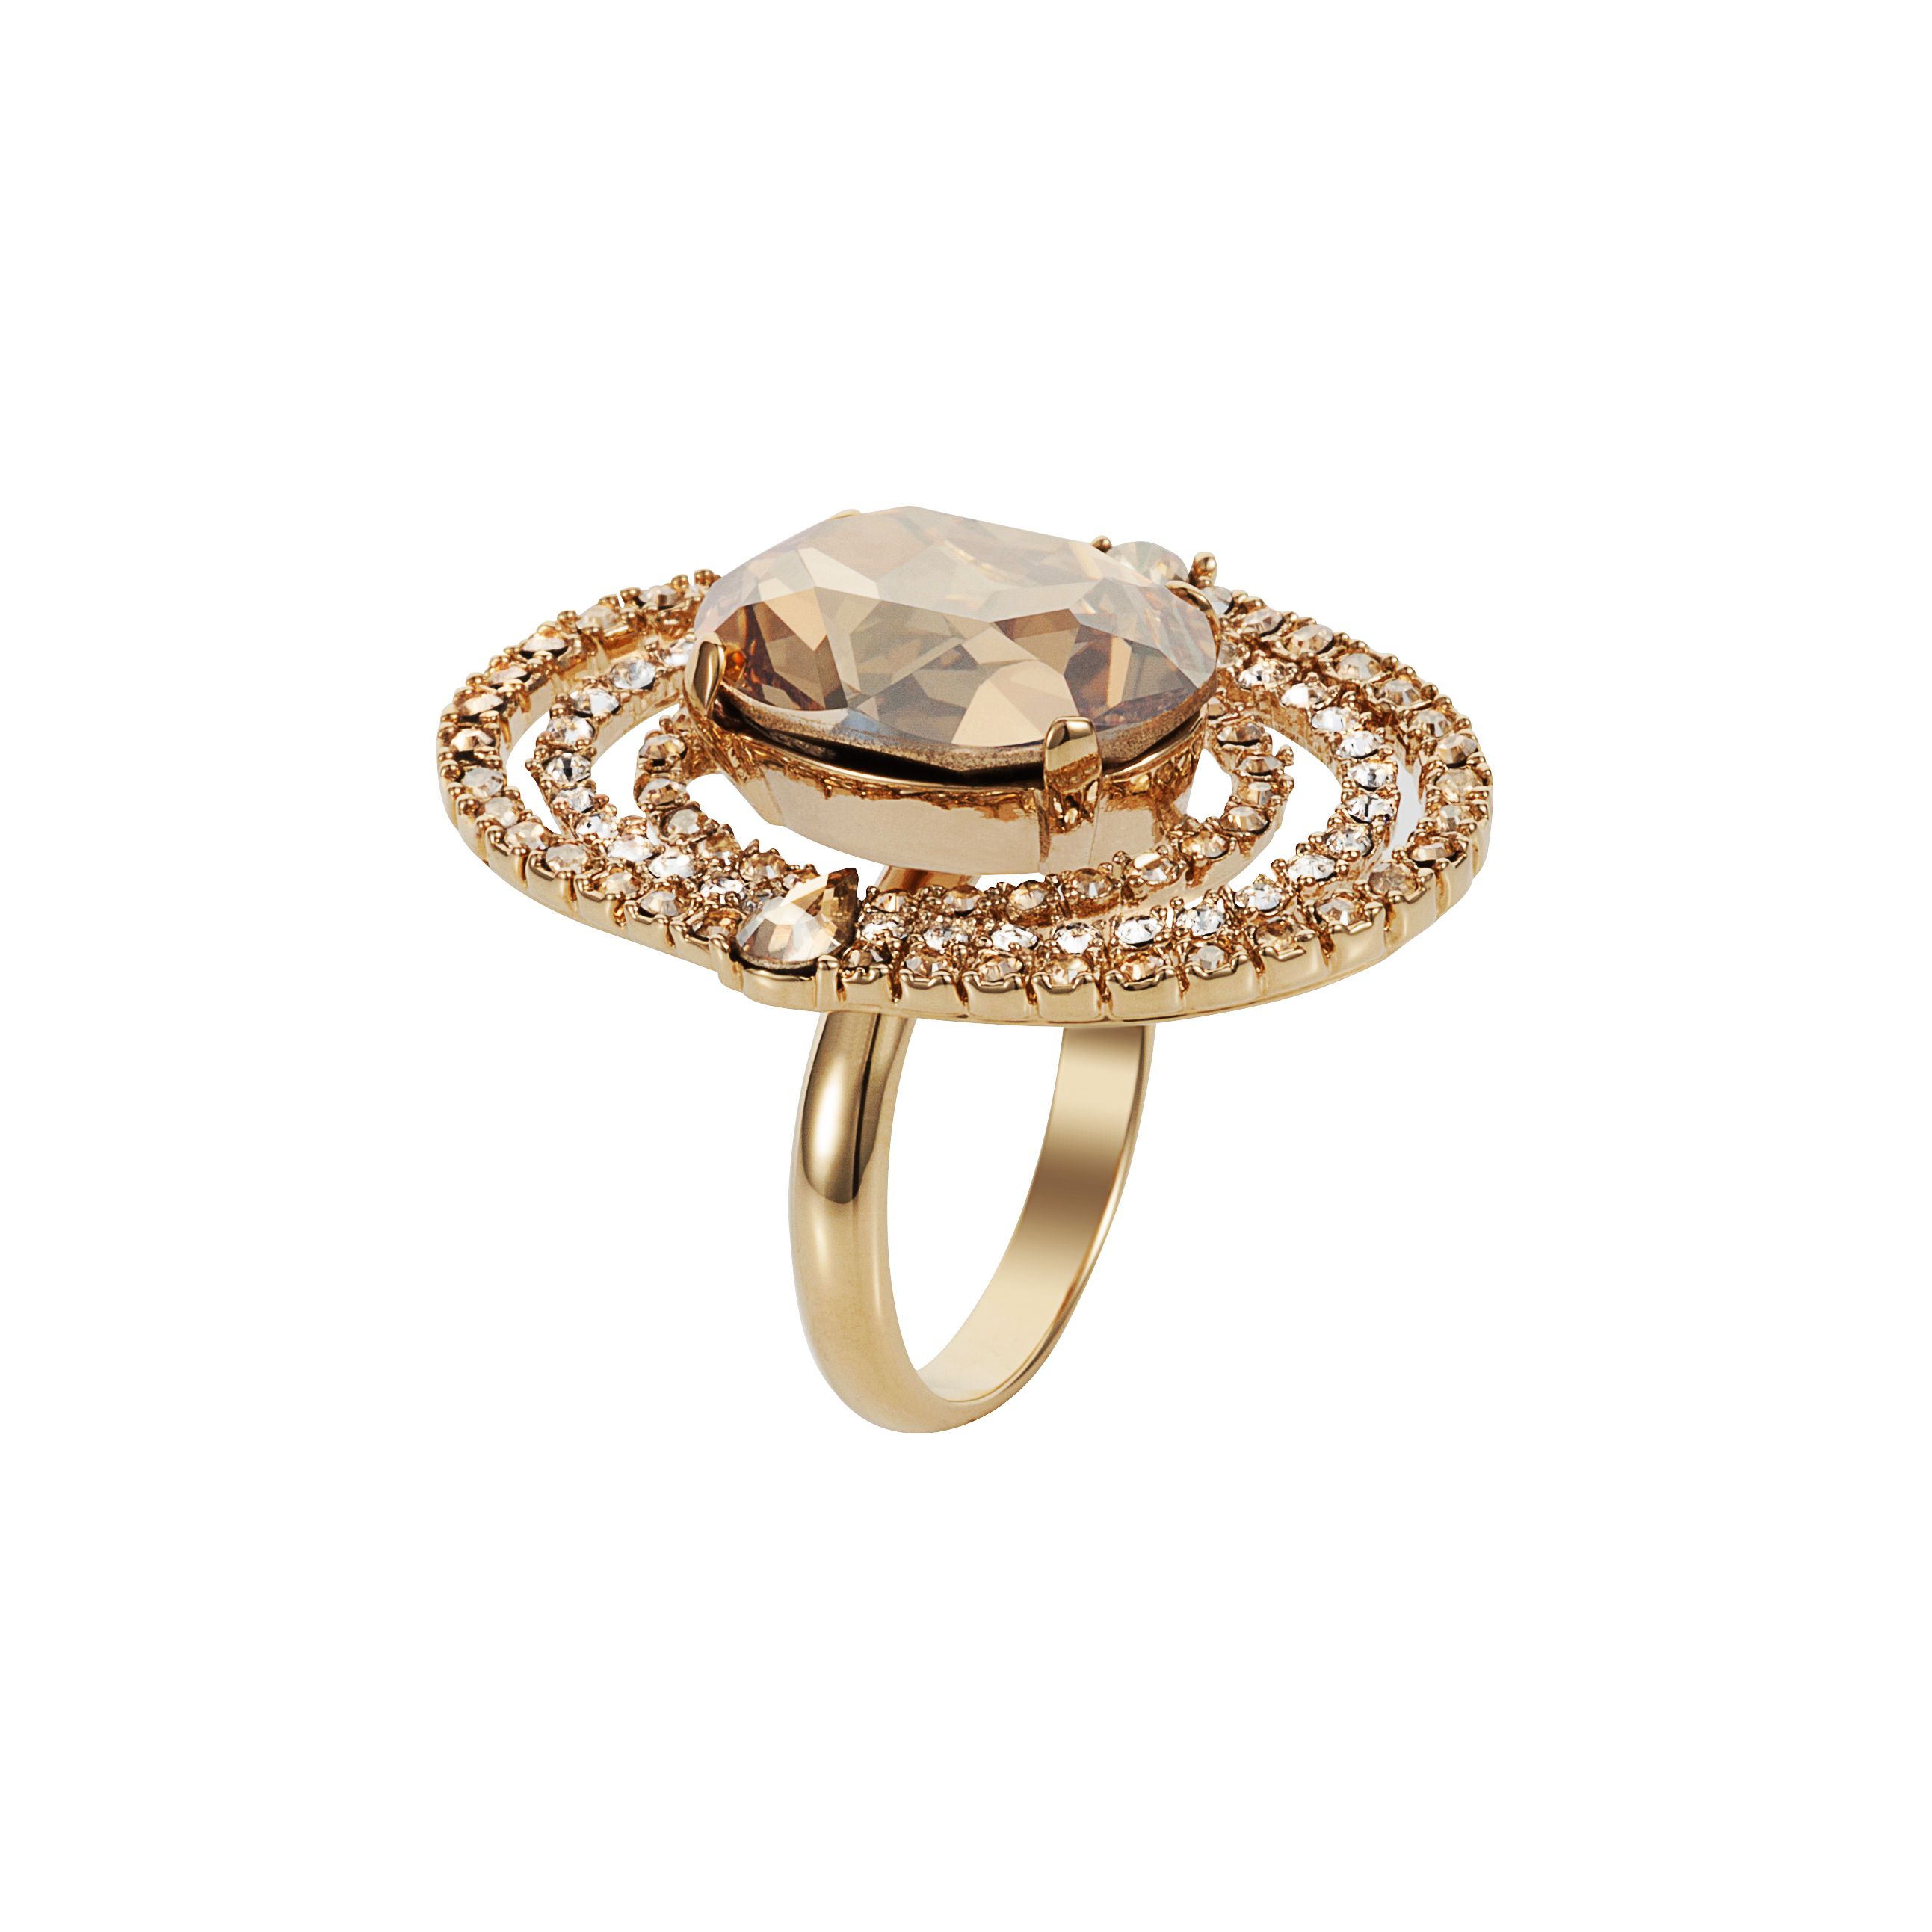 Handmade 18ct gold crystal evolution ring